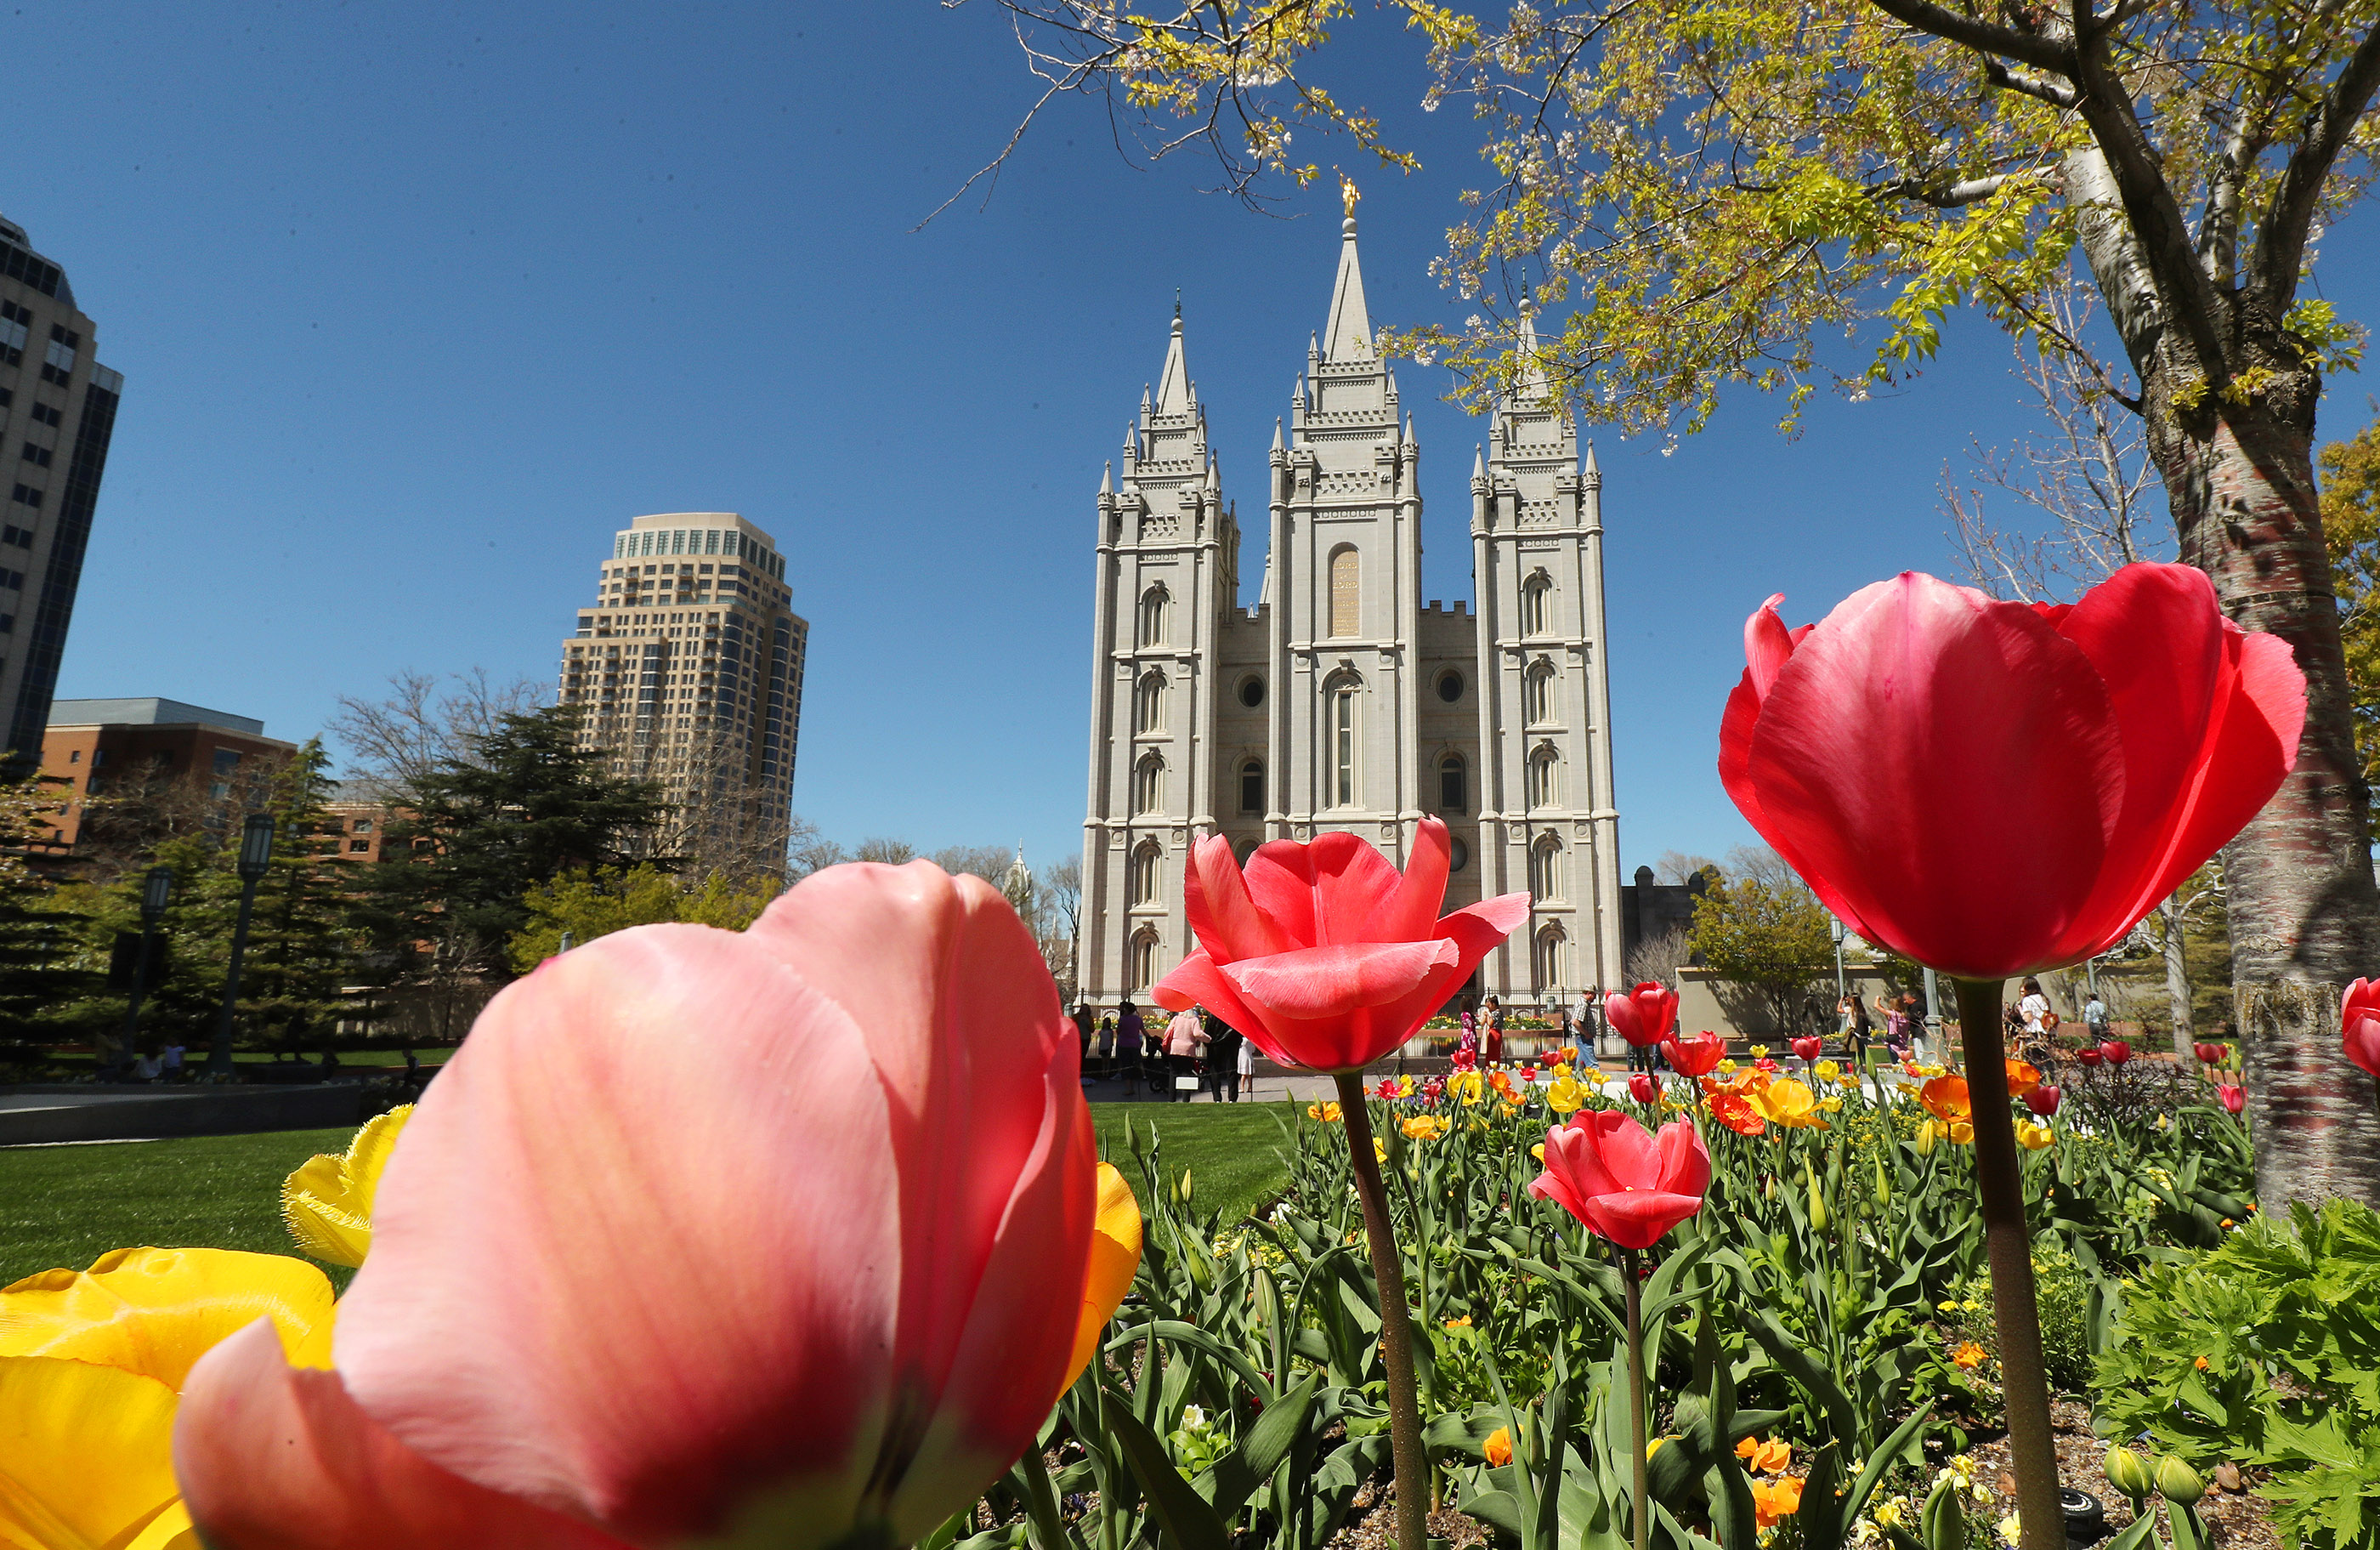 Flowers adorn the grounds of The Salt Lake Temple in Salt Lake City on Friday, April 19, 2019. Church officials announced renovations and changes to it and the grounds.